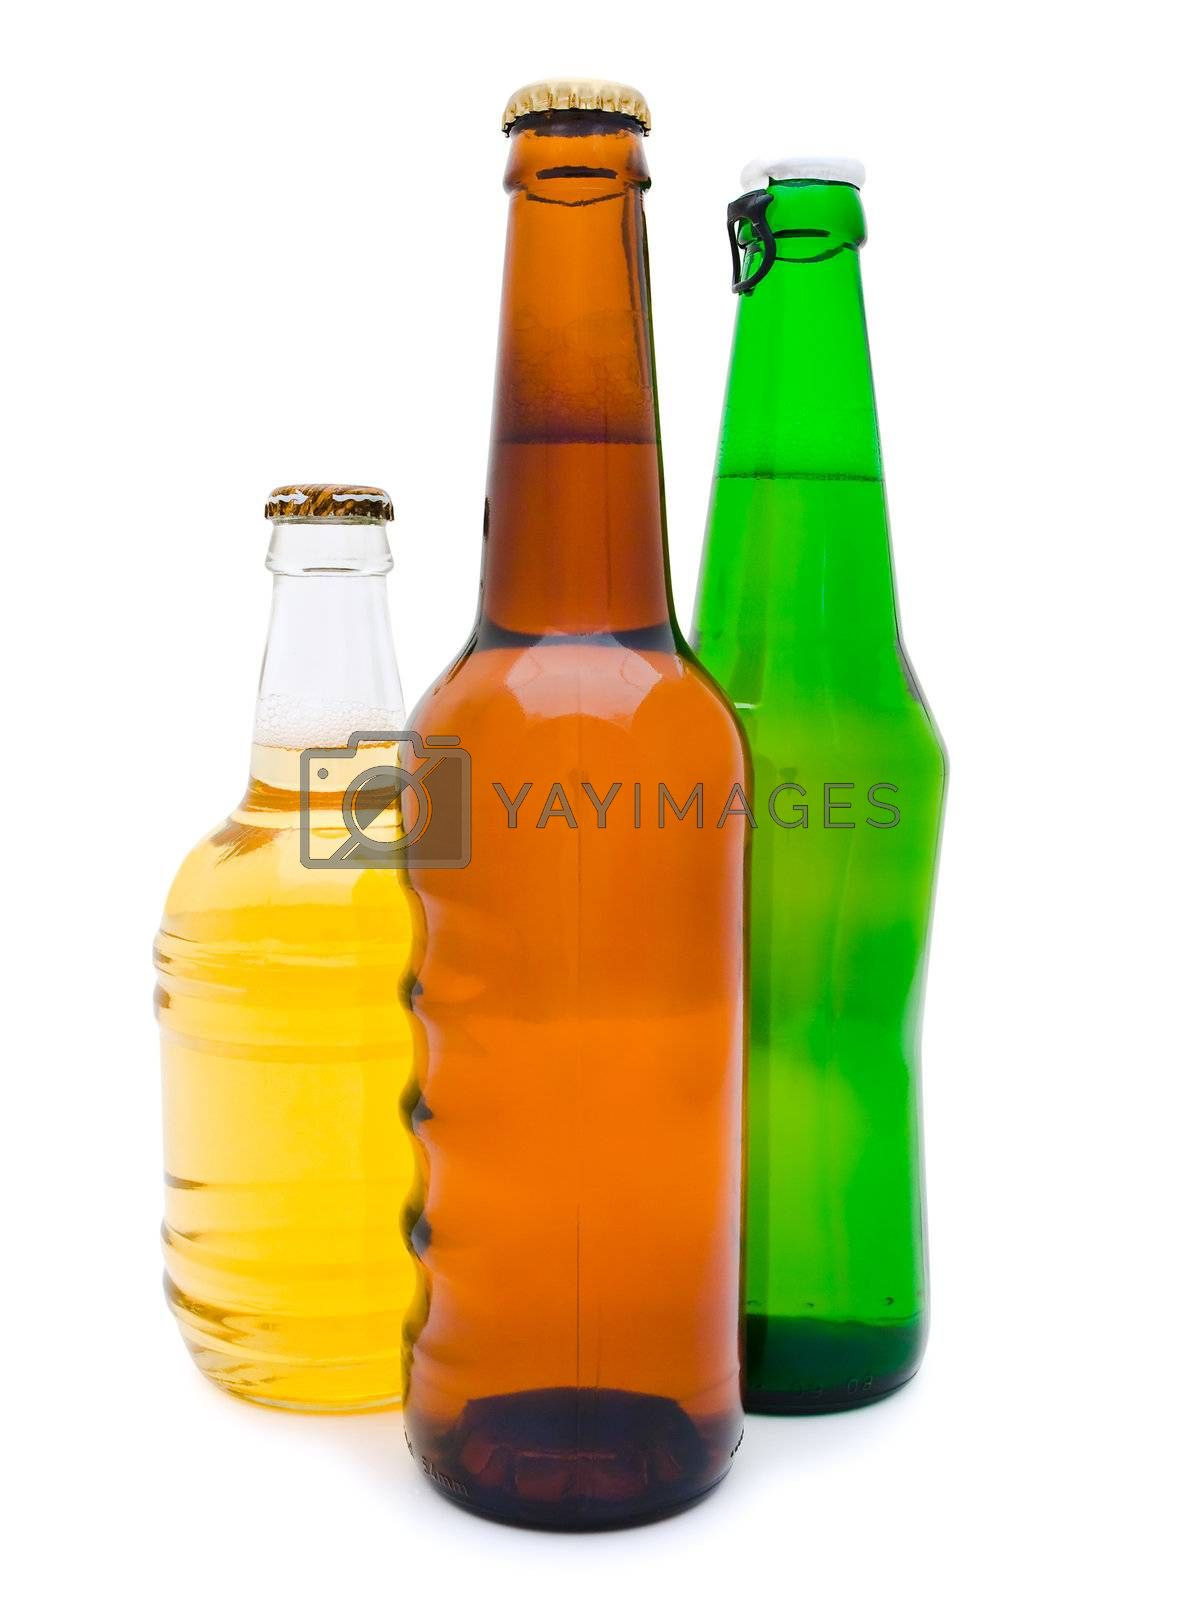 Royalty free image of beer by SNR